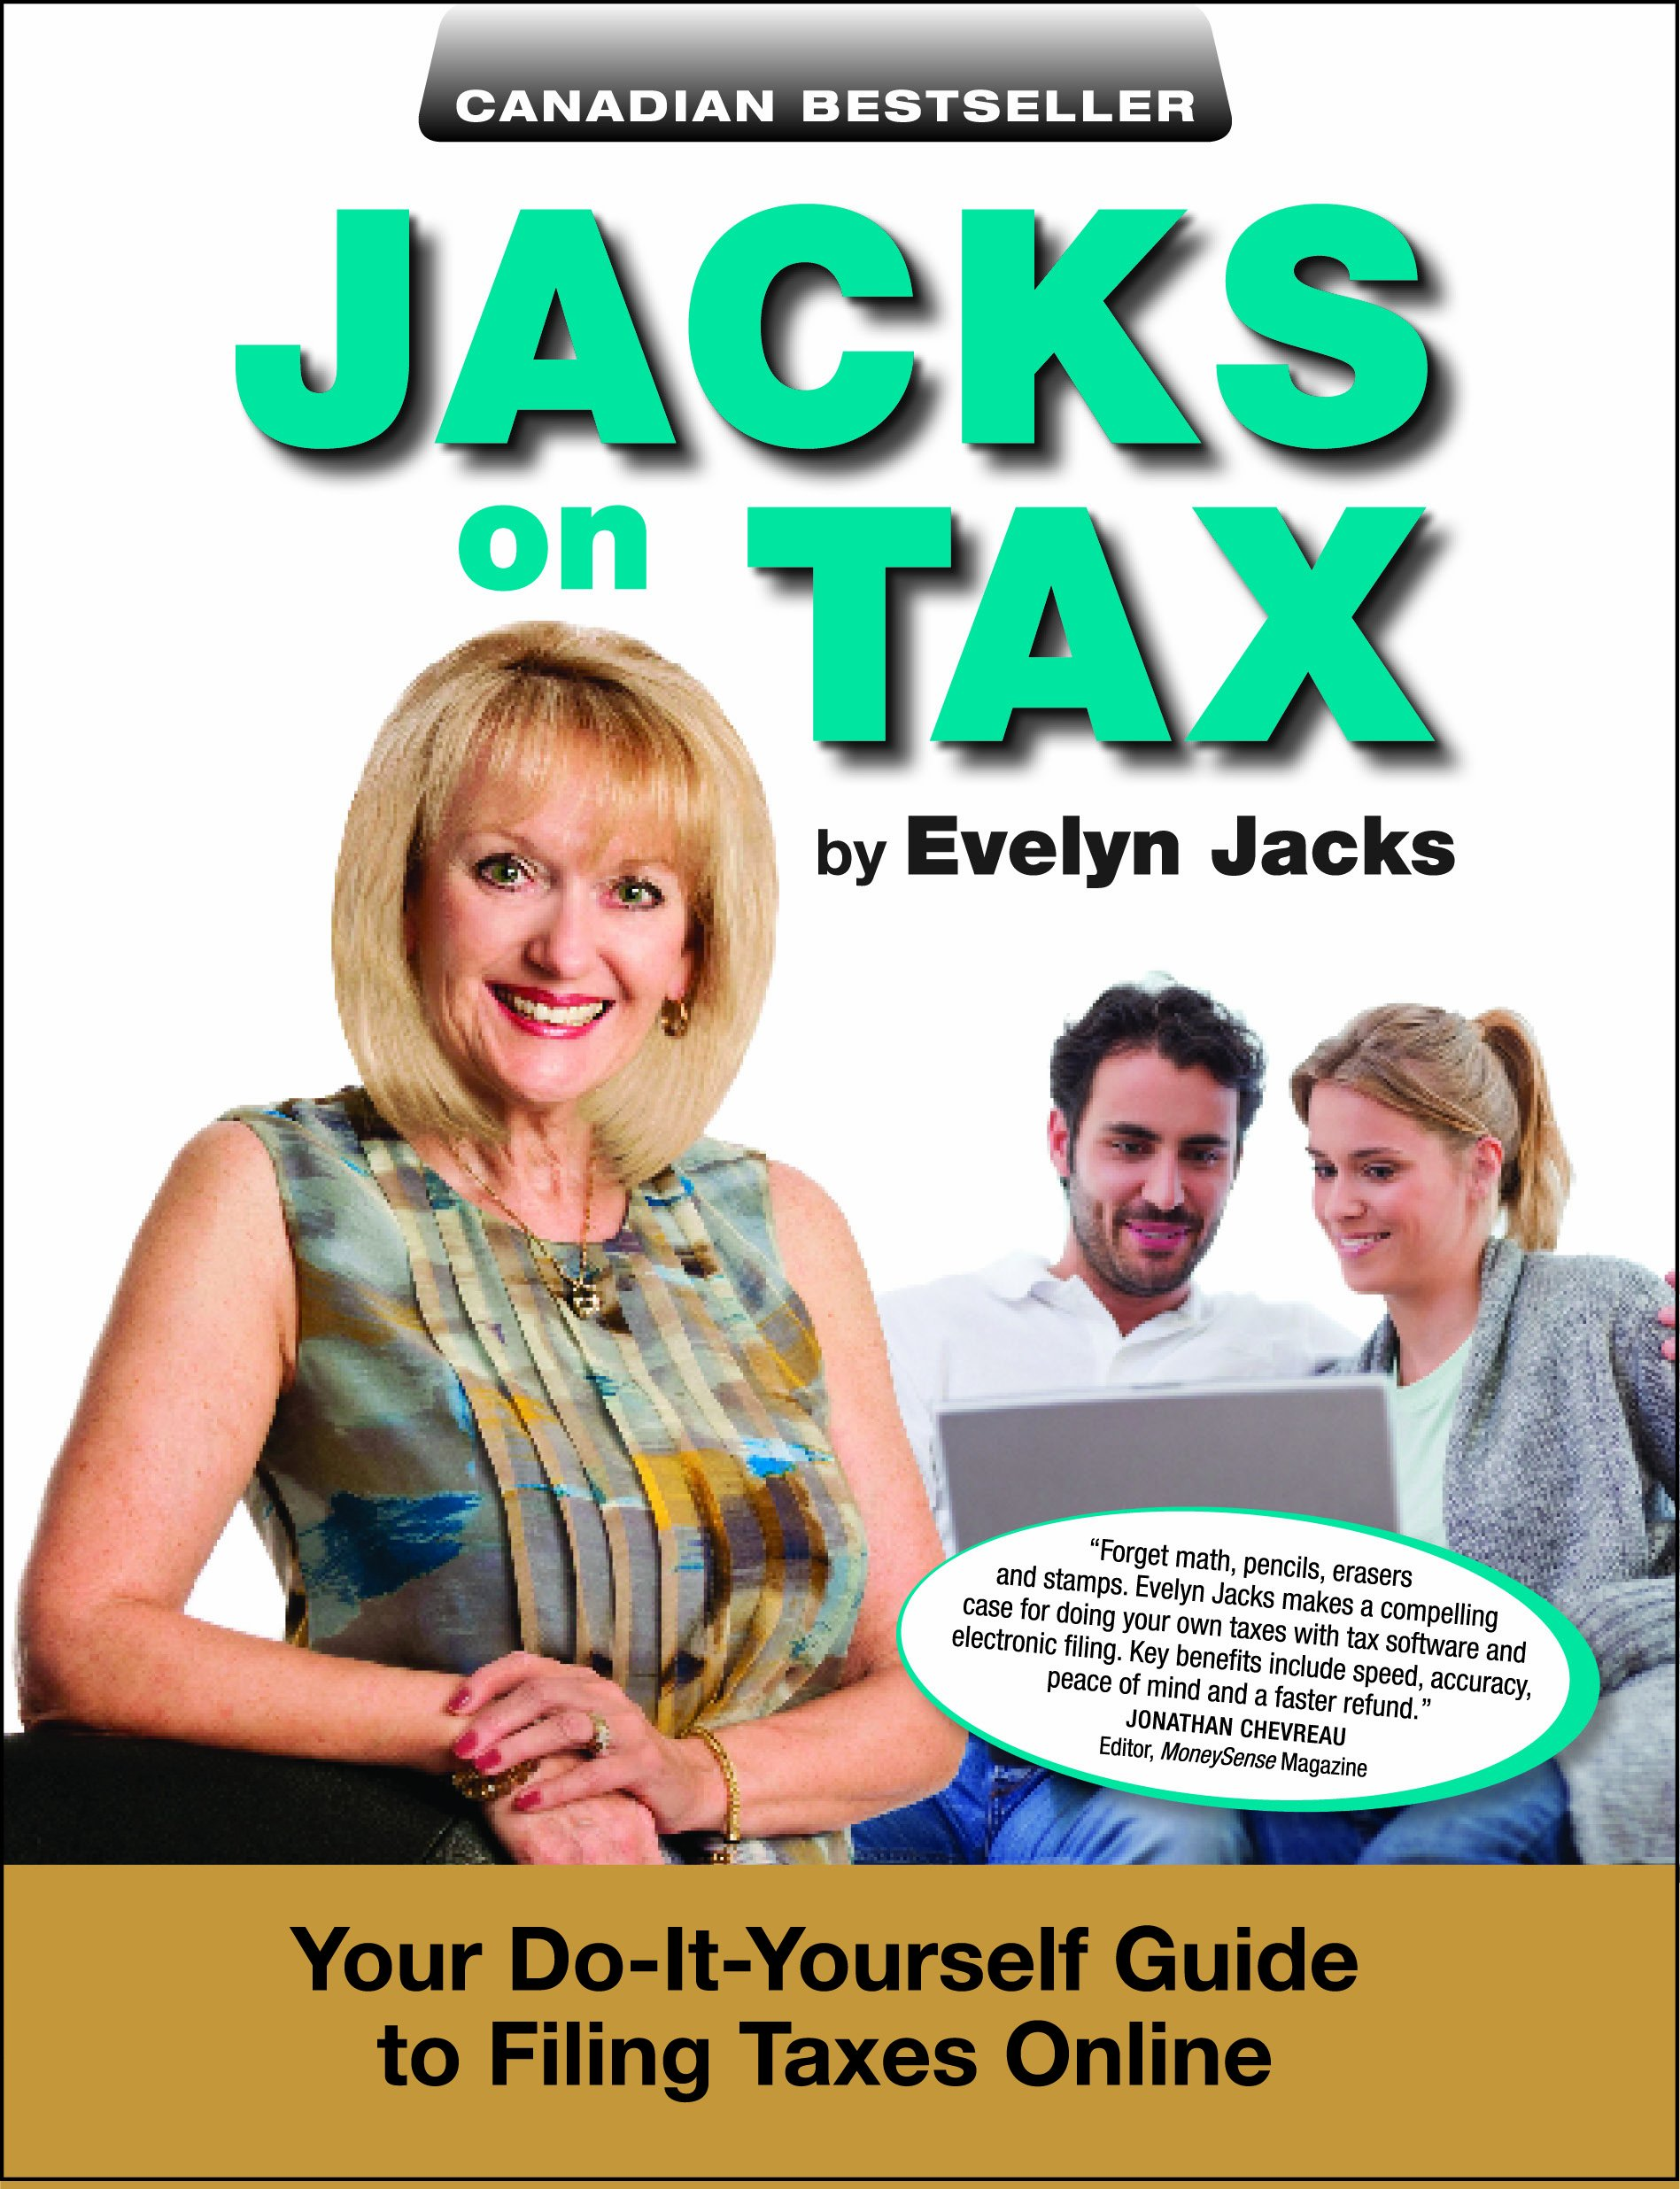 Jacks on tax your do it yourself guide to filing taxes online jacks on tax your do it yourself guide to filing taxes online evelyn jacks 9781927495209 amazon books solutioingenieria Gallery